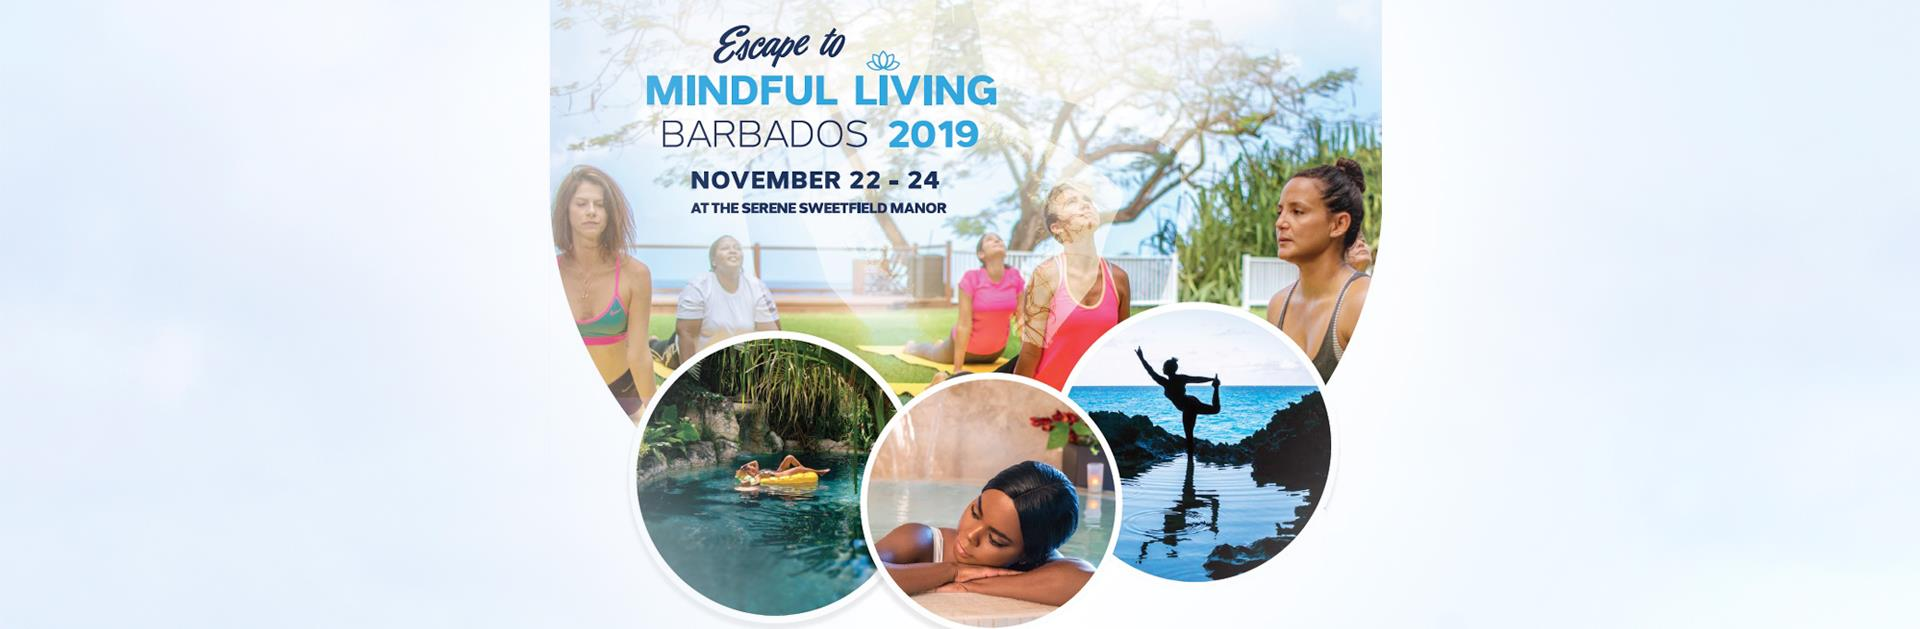 Mindful Living Barbados